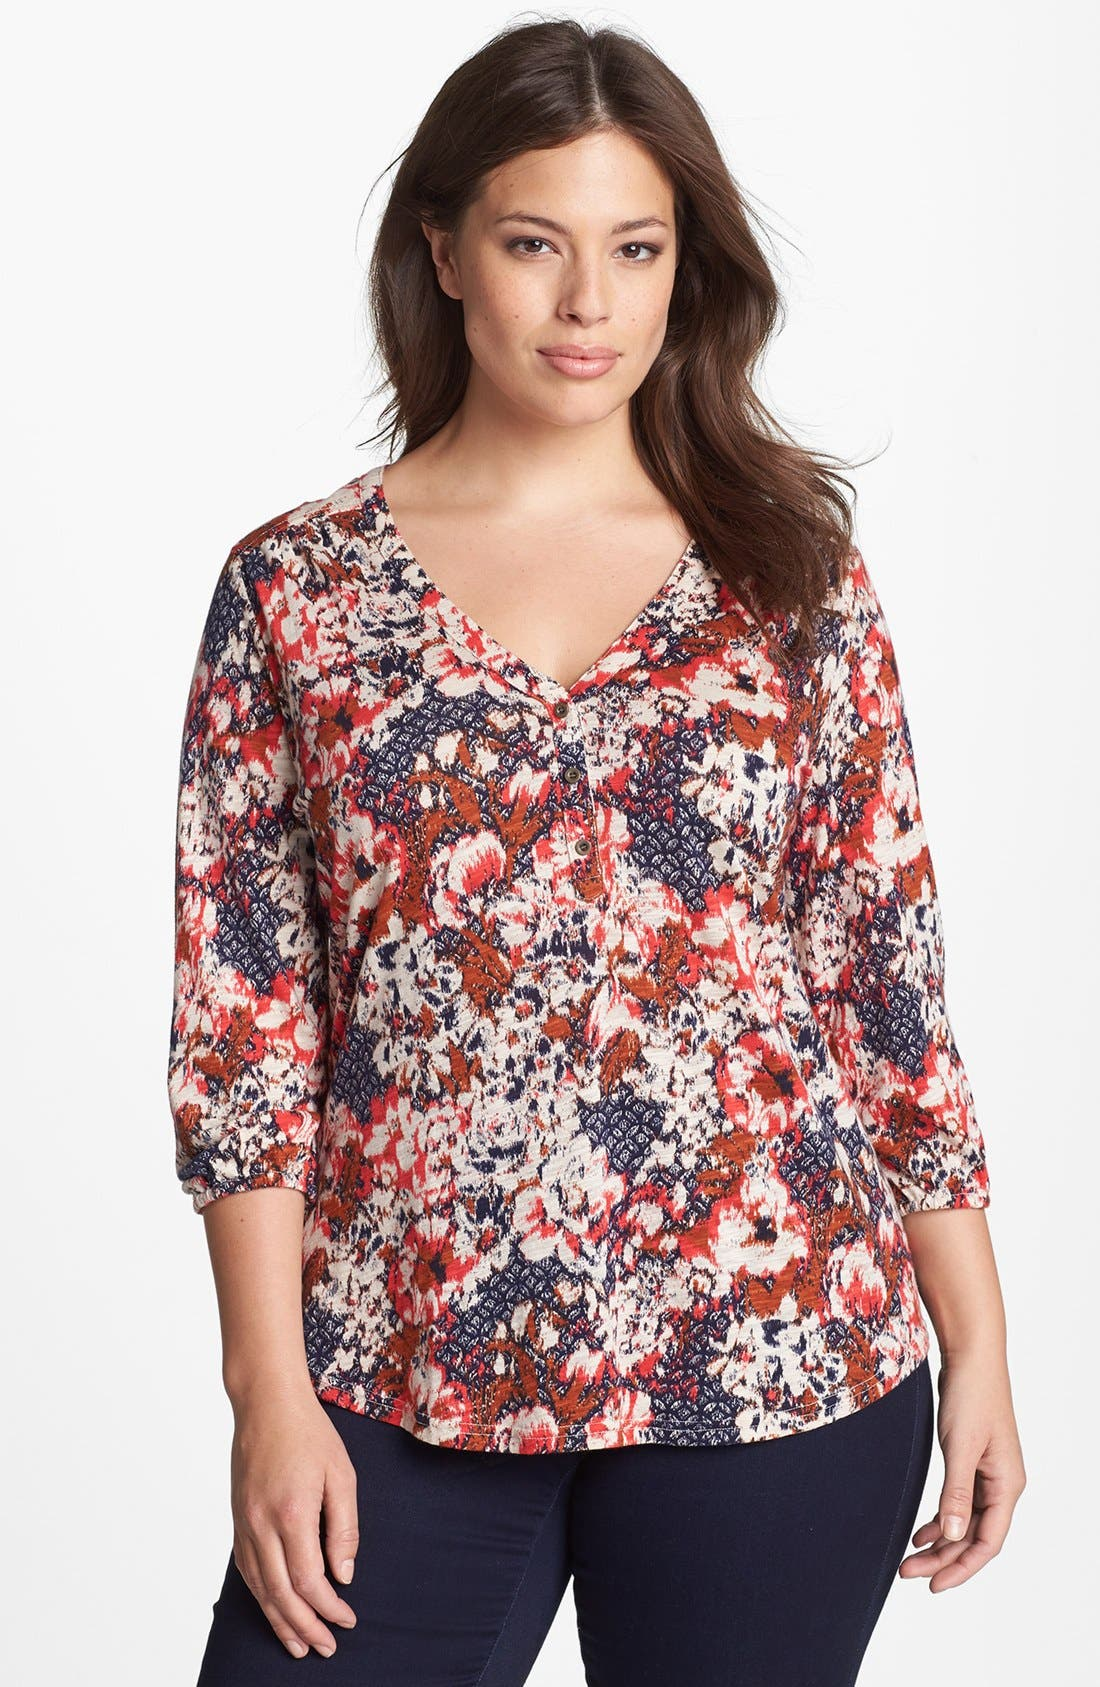 Alternate Image 1 Selected - Lucky Brand 'Cambria' Floral Print Cotton Blend Top (Plus Size)